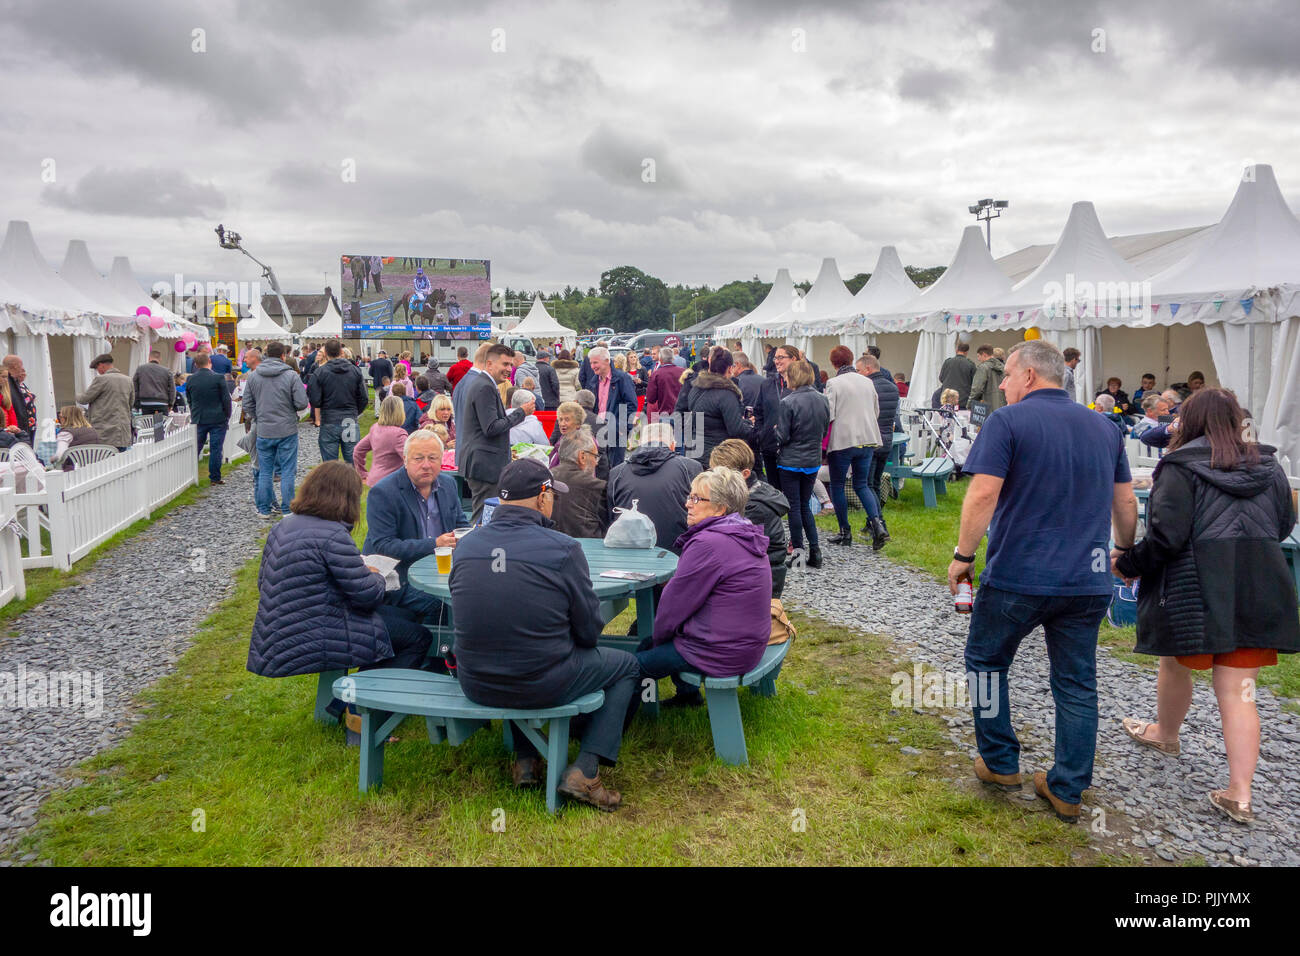 Racegoers in the Paddock enclosure at Cartmel Races on August Bank Holiday 2018, Cartmel, Cumbria, England, UK Stock Photo